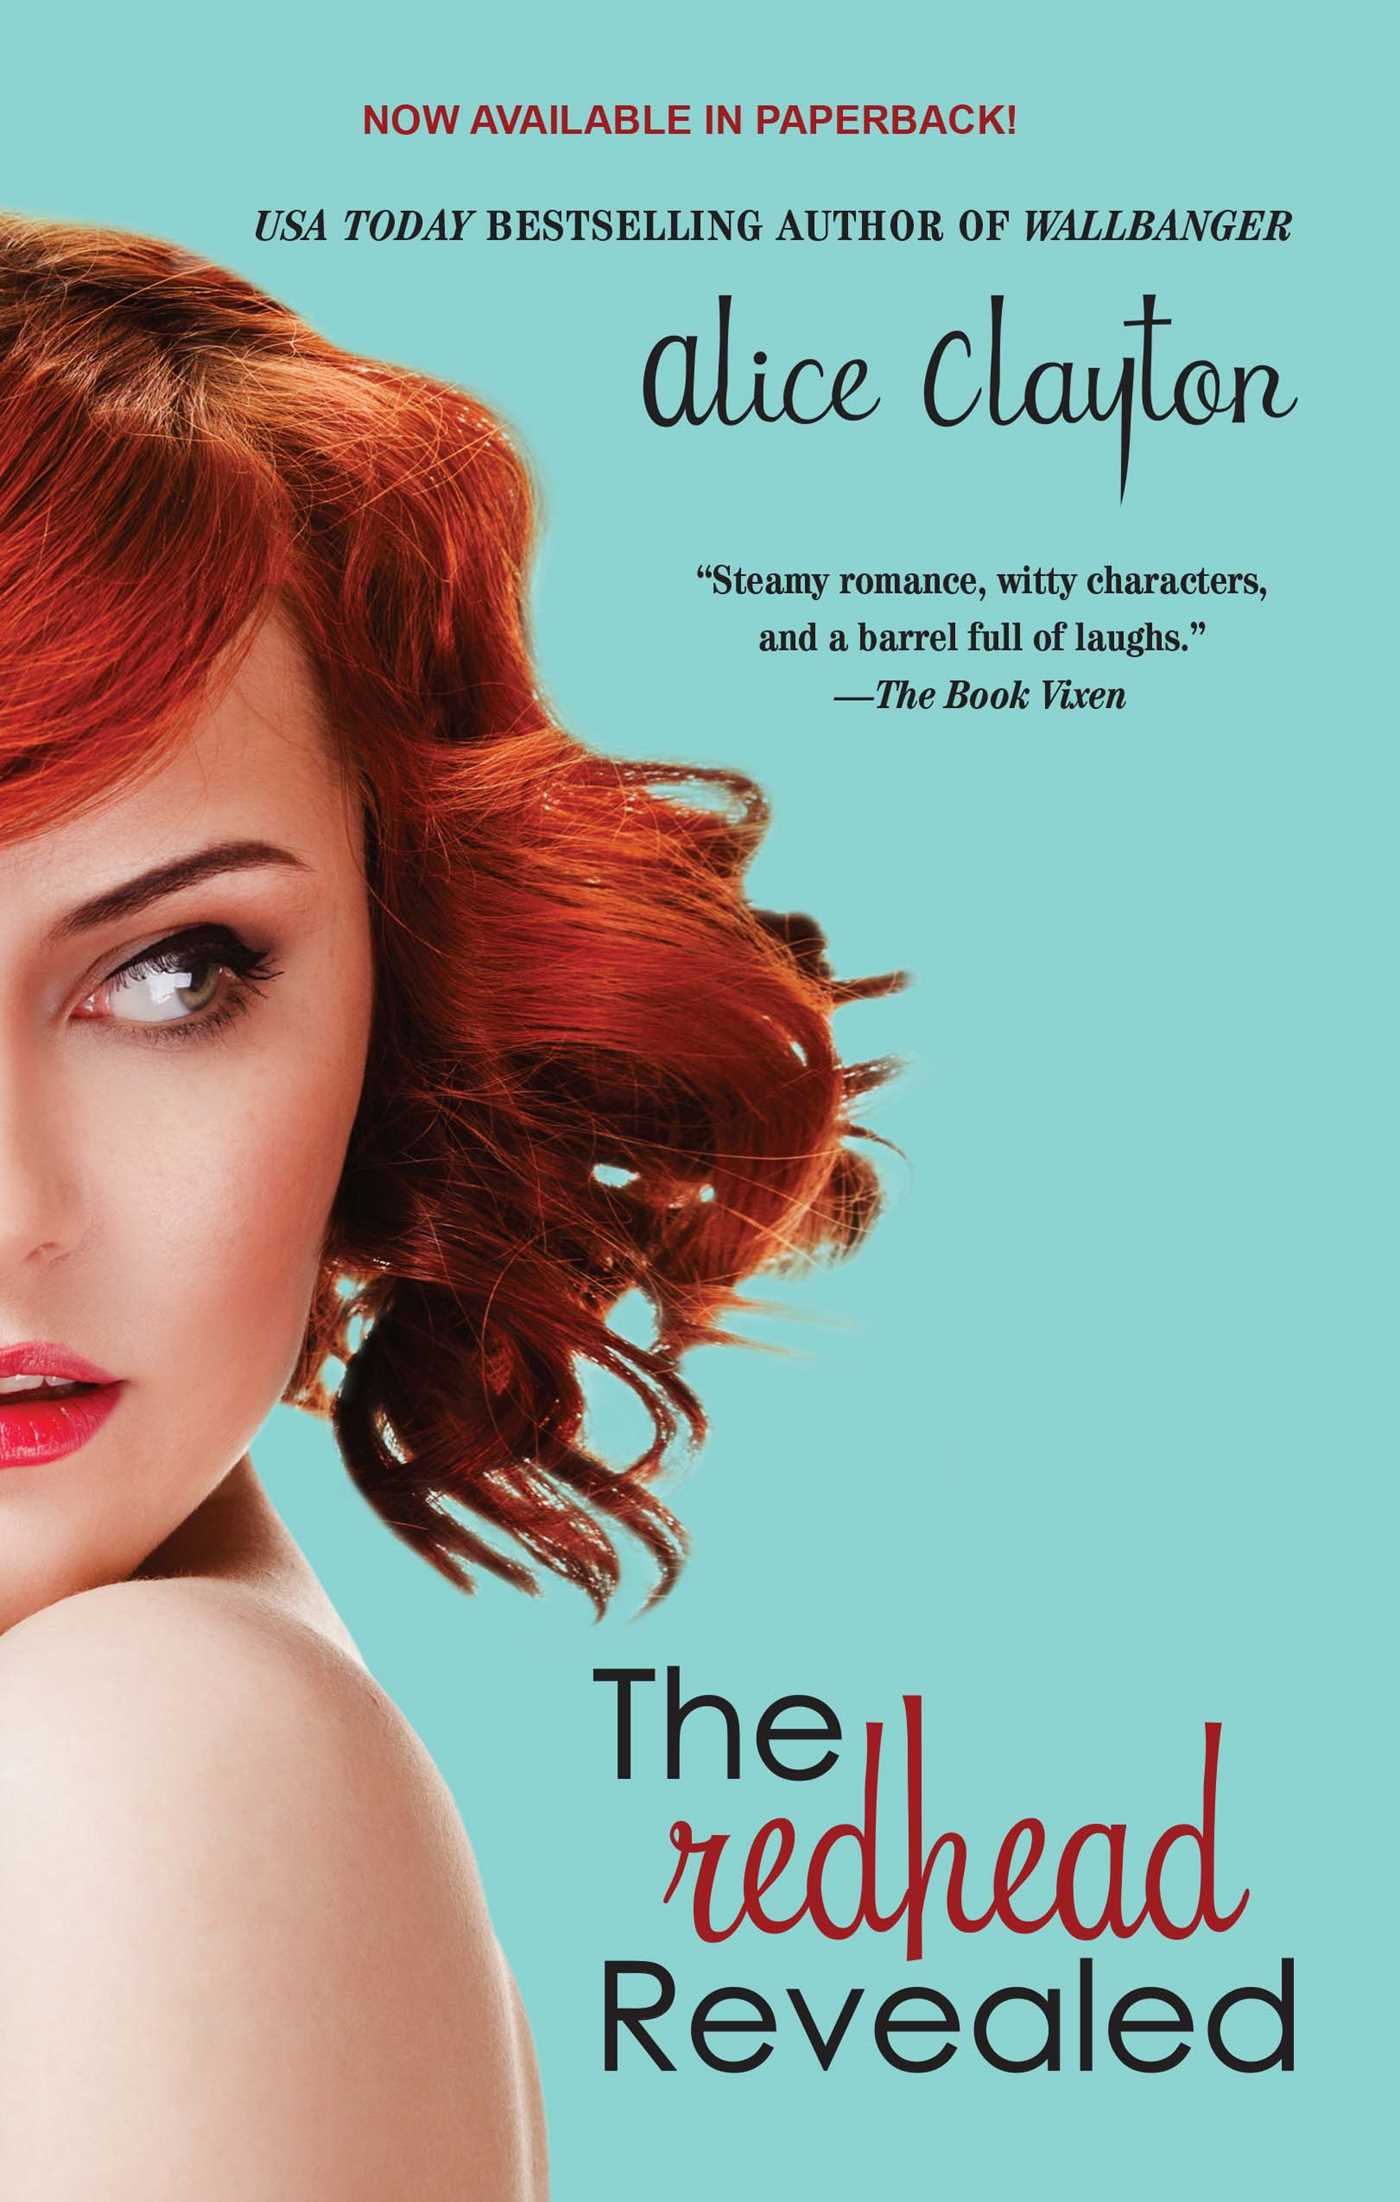 The redhead revealed 9781476741239 hr